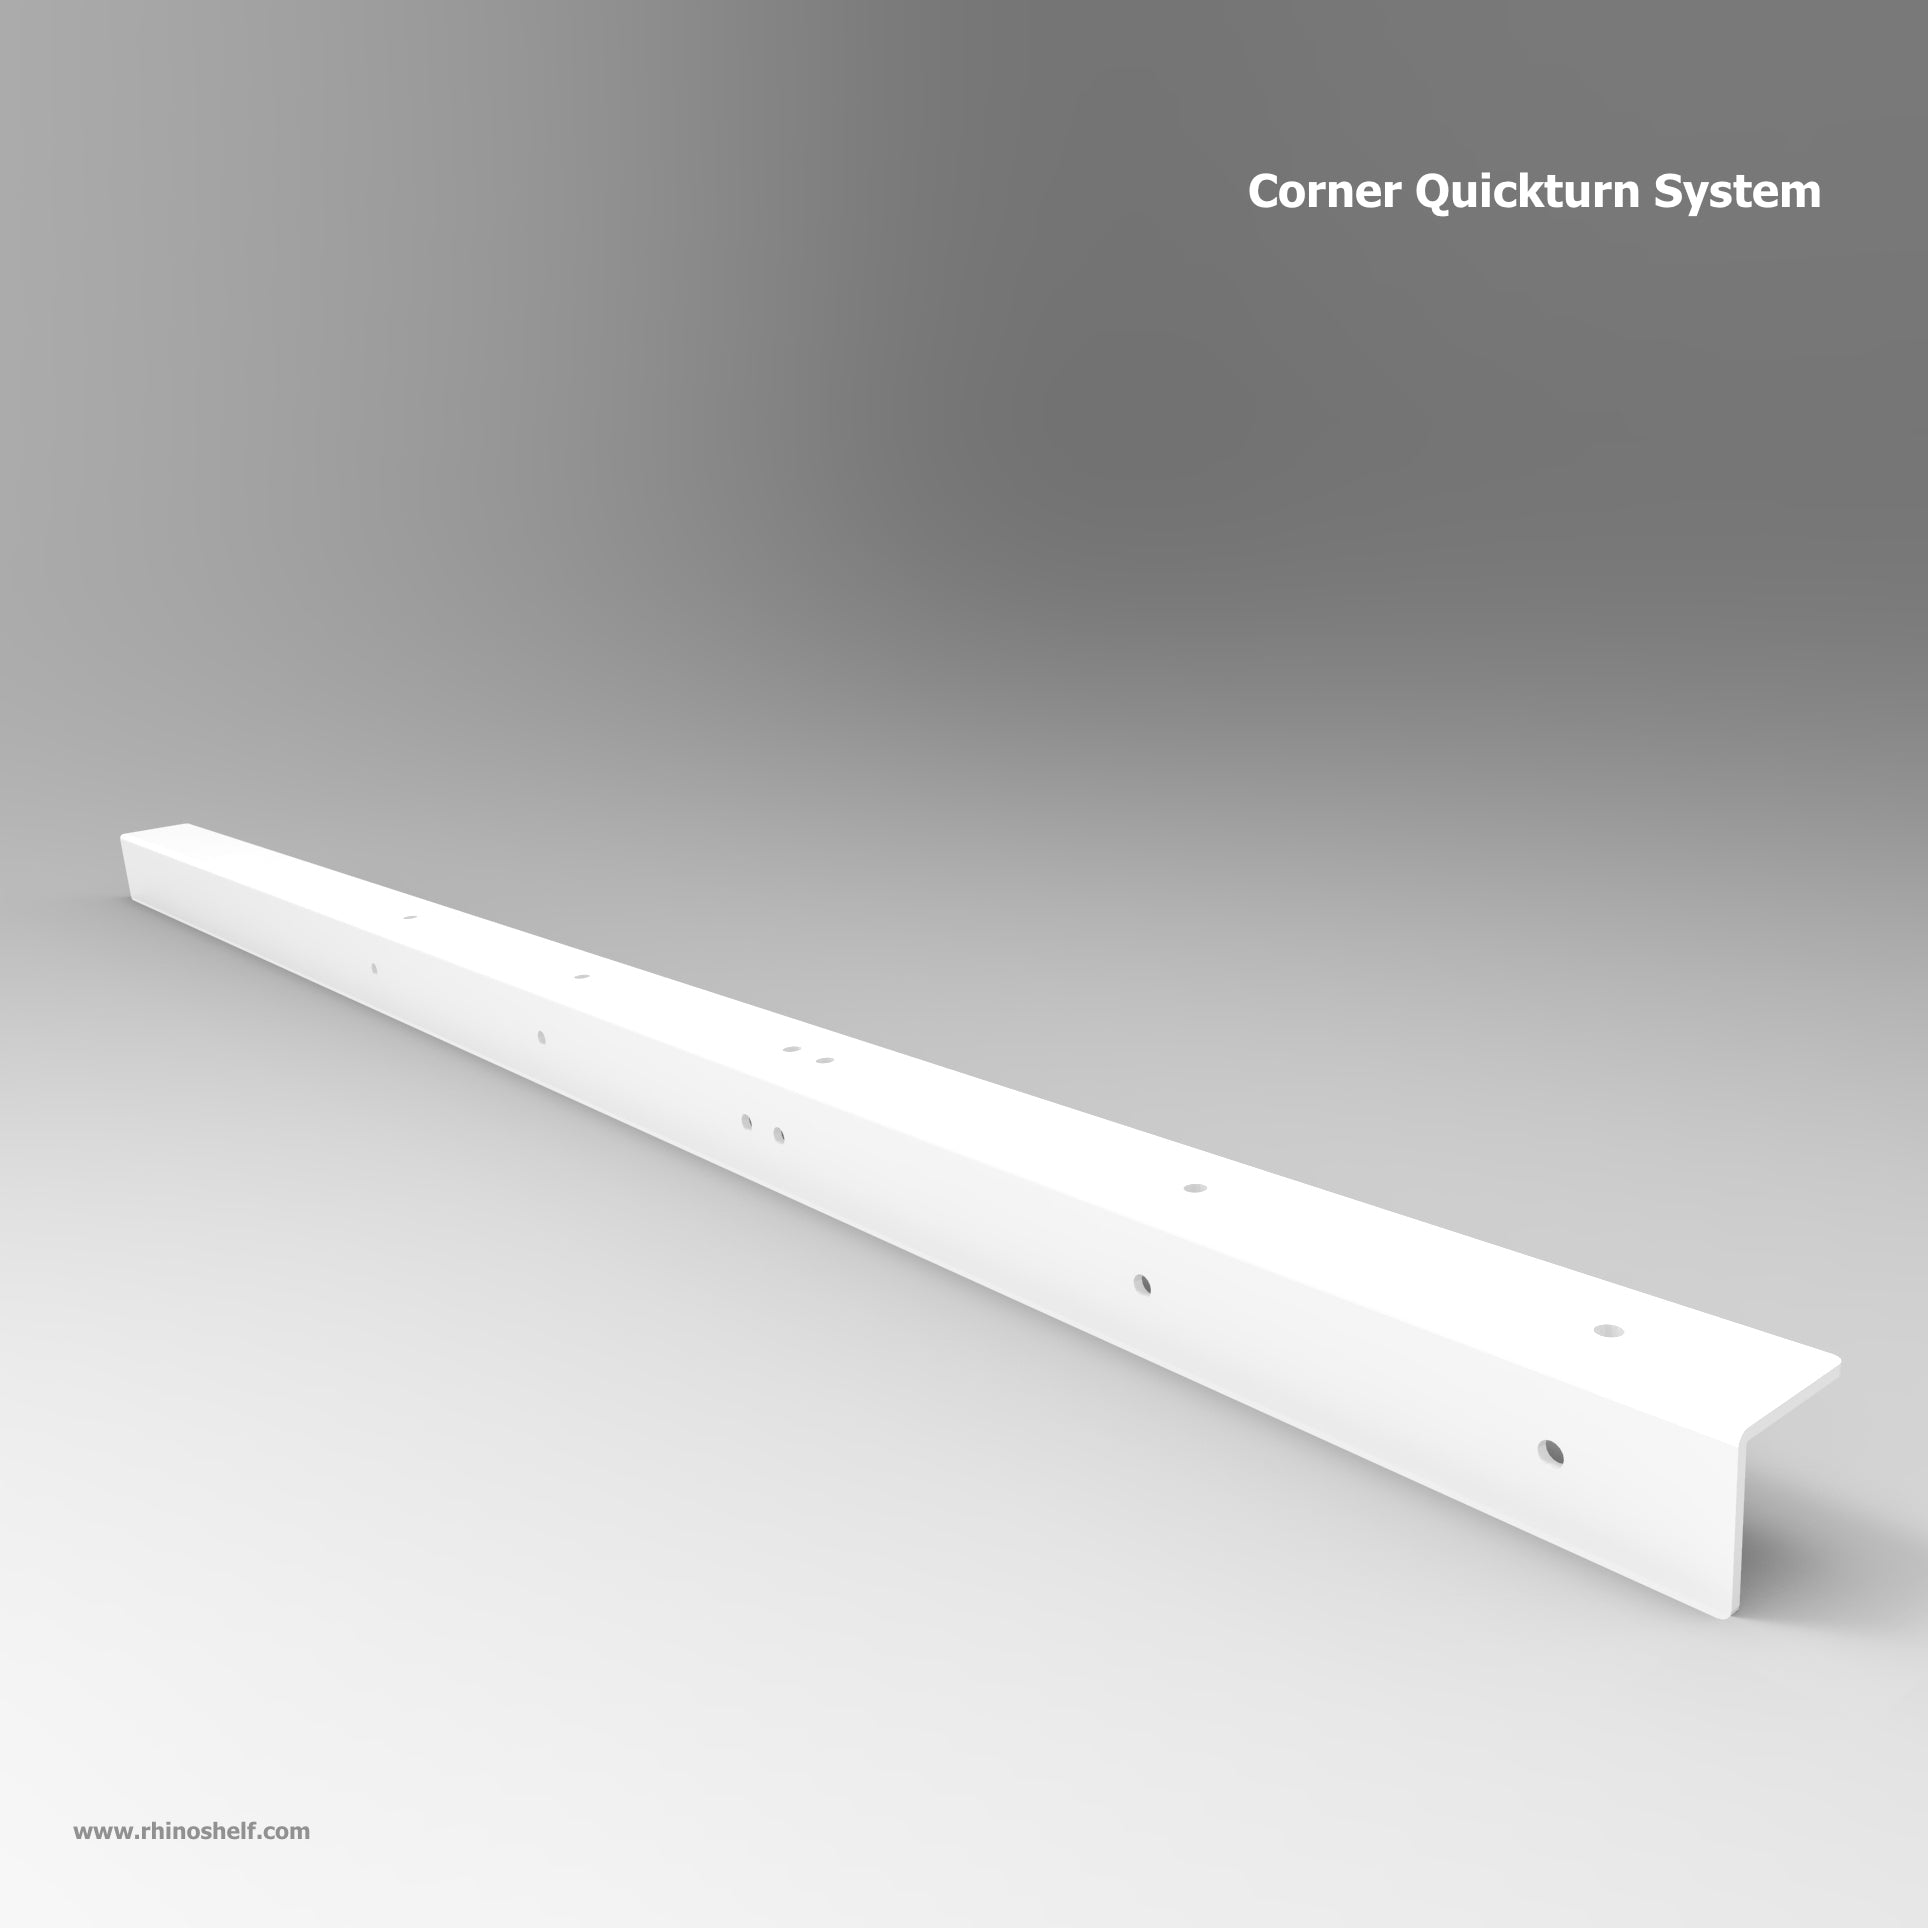 Rhino Corner Quickturn System | Corners are no problem for Rhino Shelf Garage Storage solutions